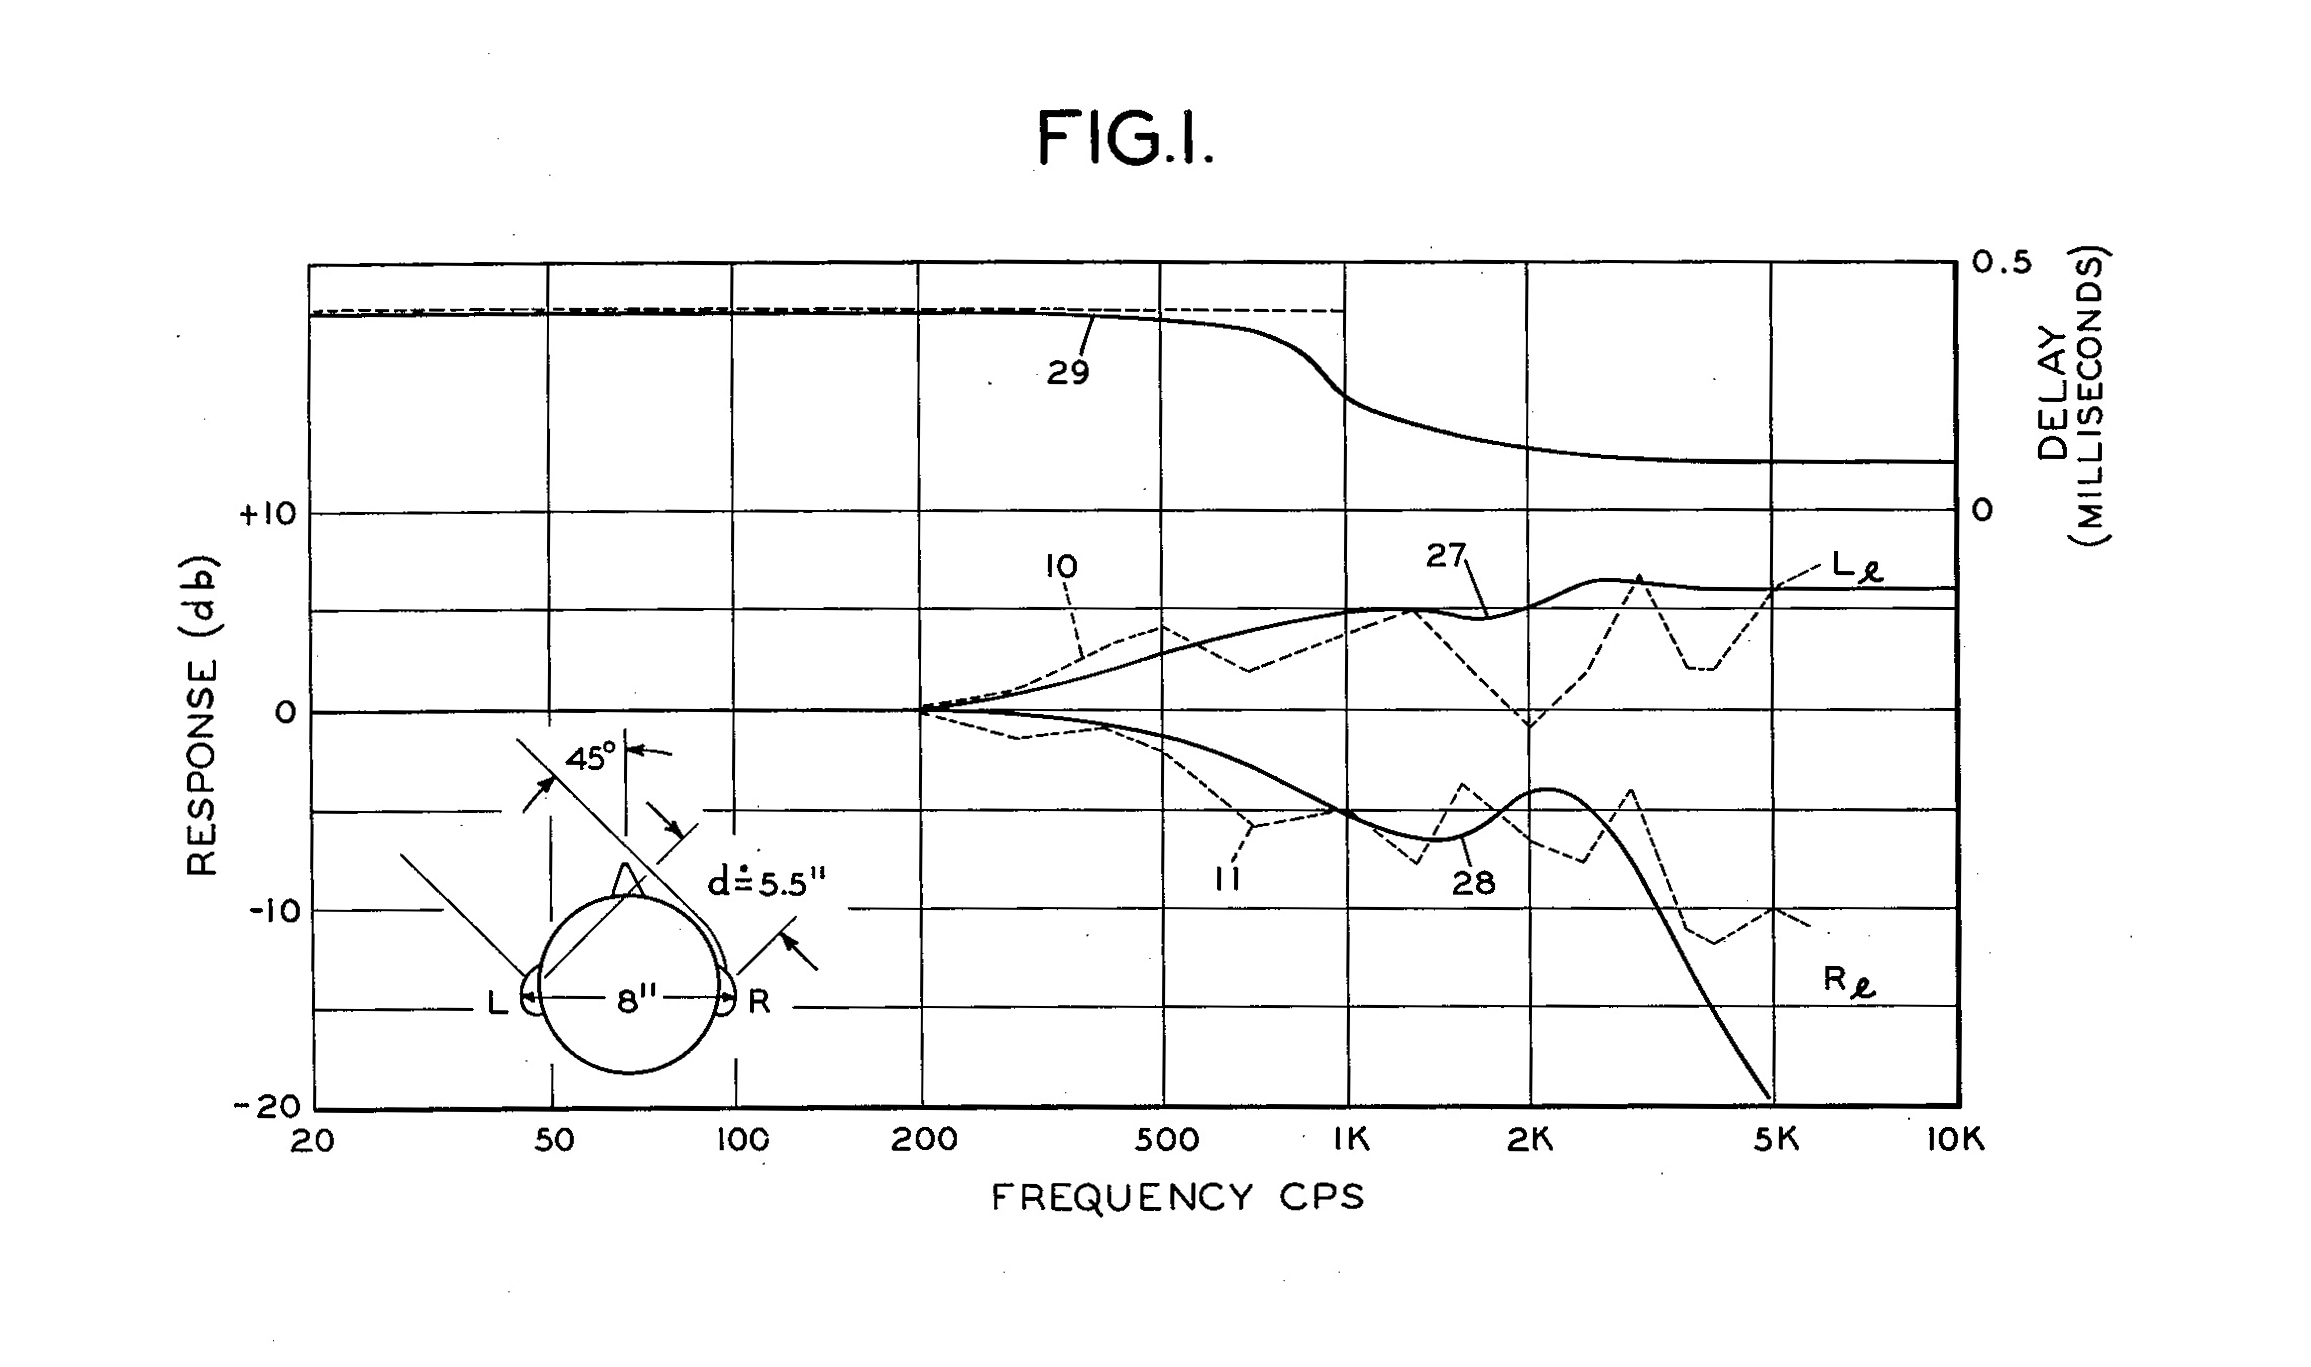 Fig I Response dB to Frequency CPS